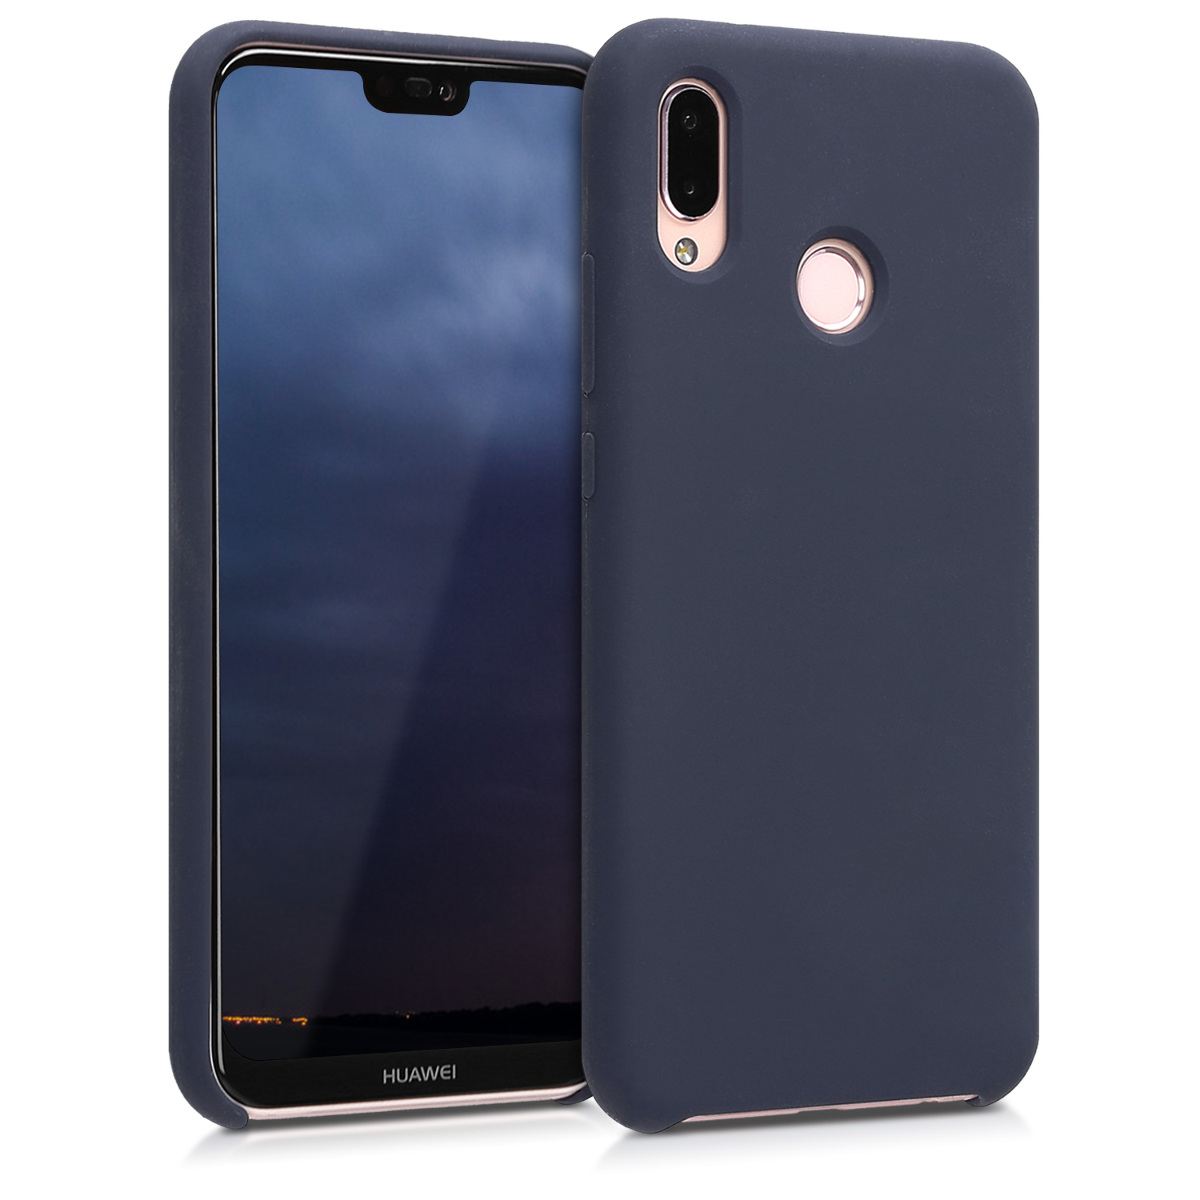 KW Θήκη Σιλικόνης Huawei P20 Lite - Soft Flexible Rubber - Dark Blue Matte - (45687.53)